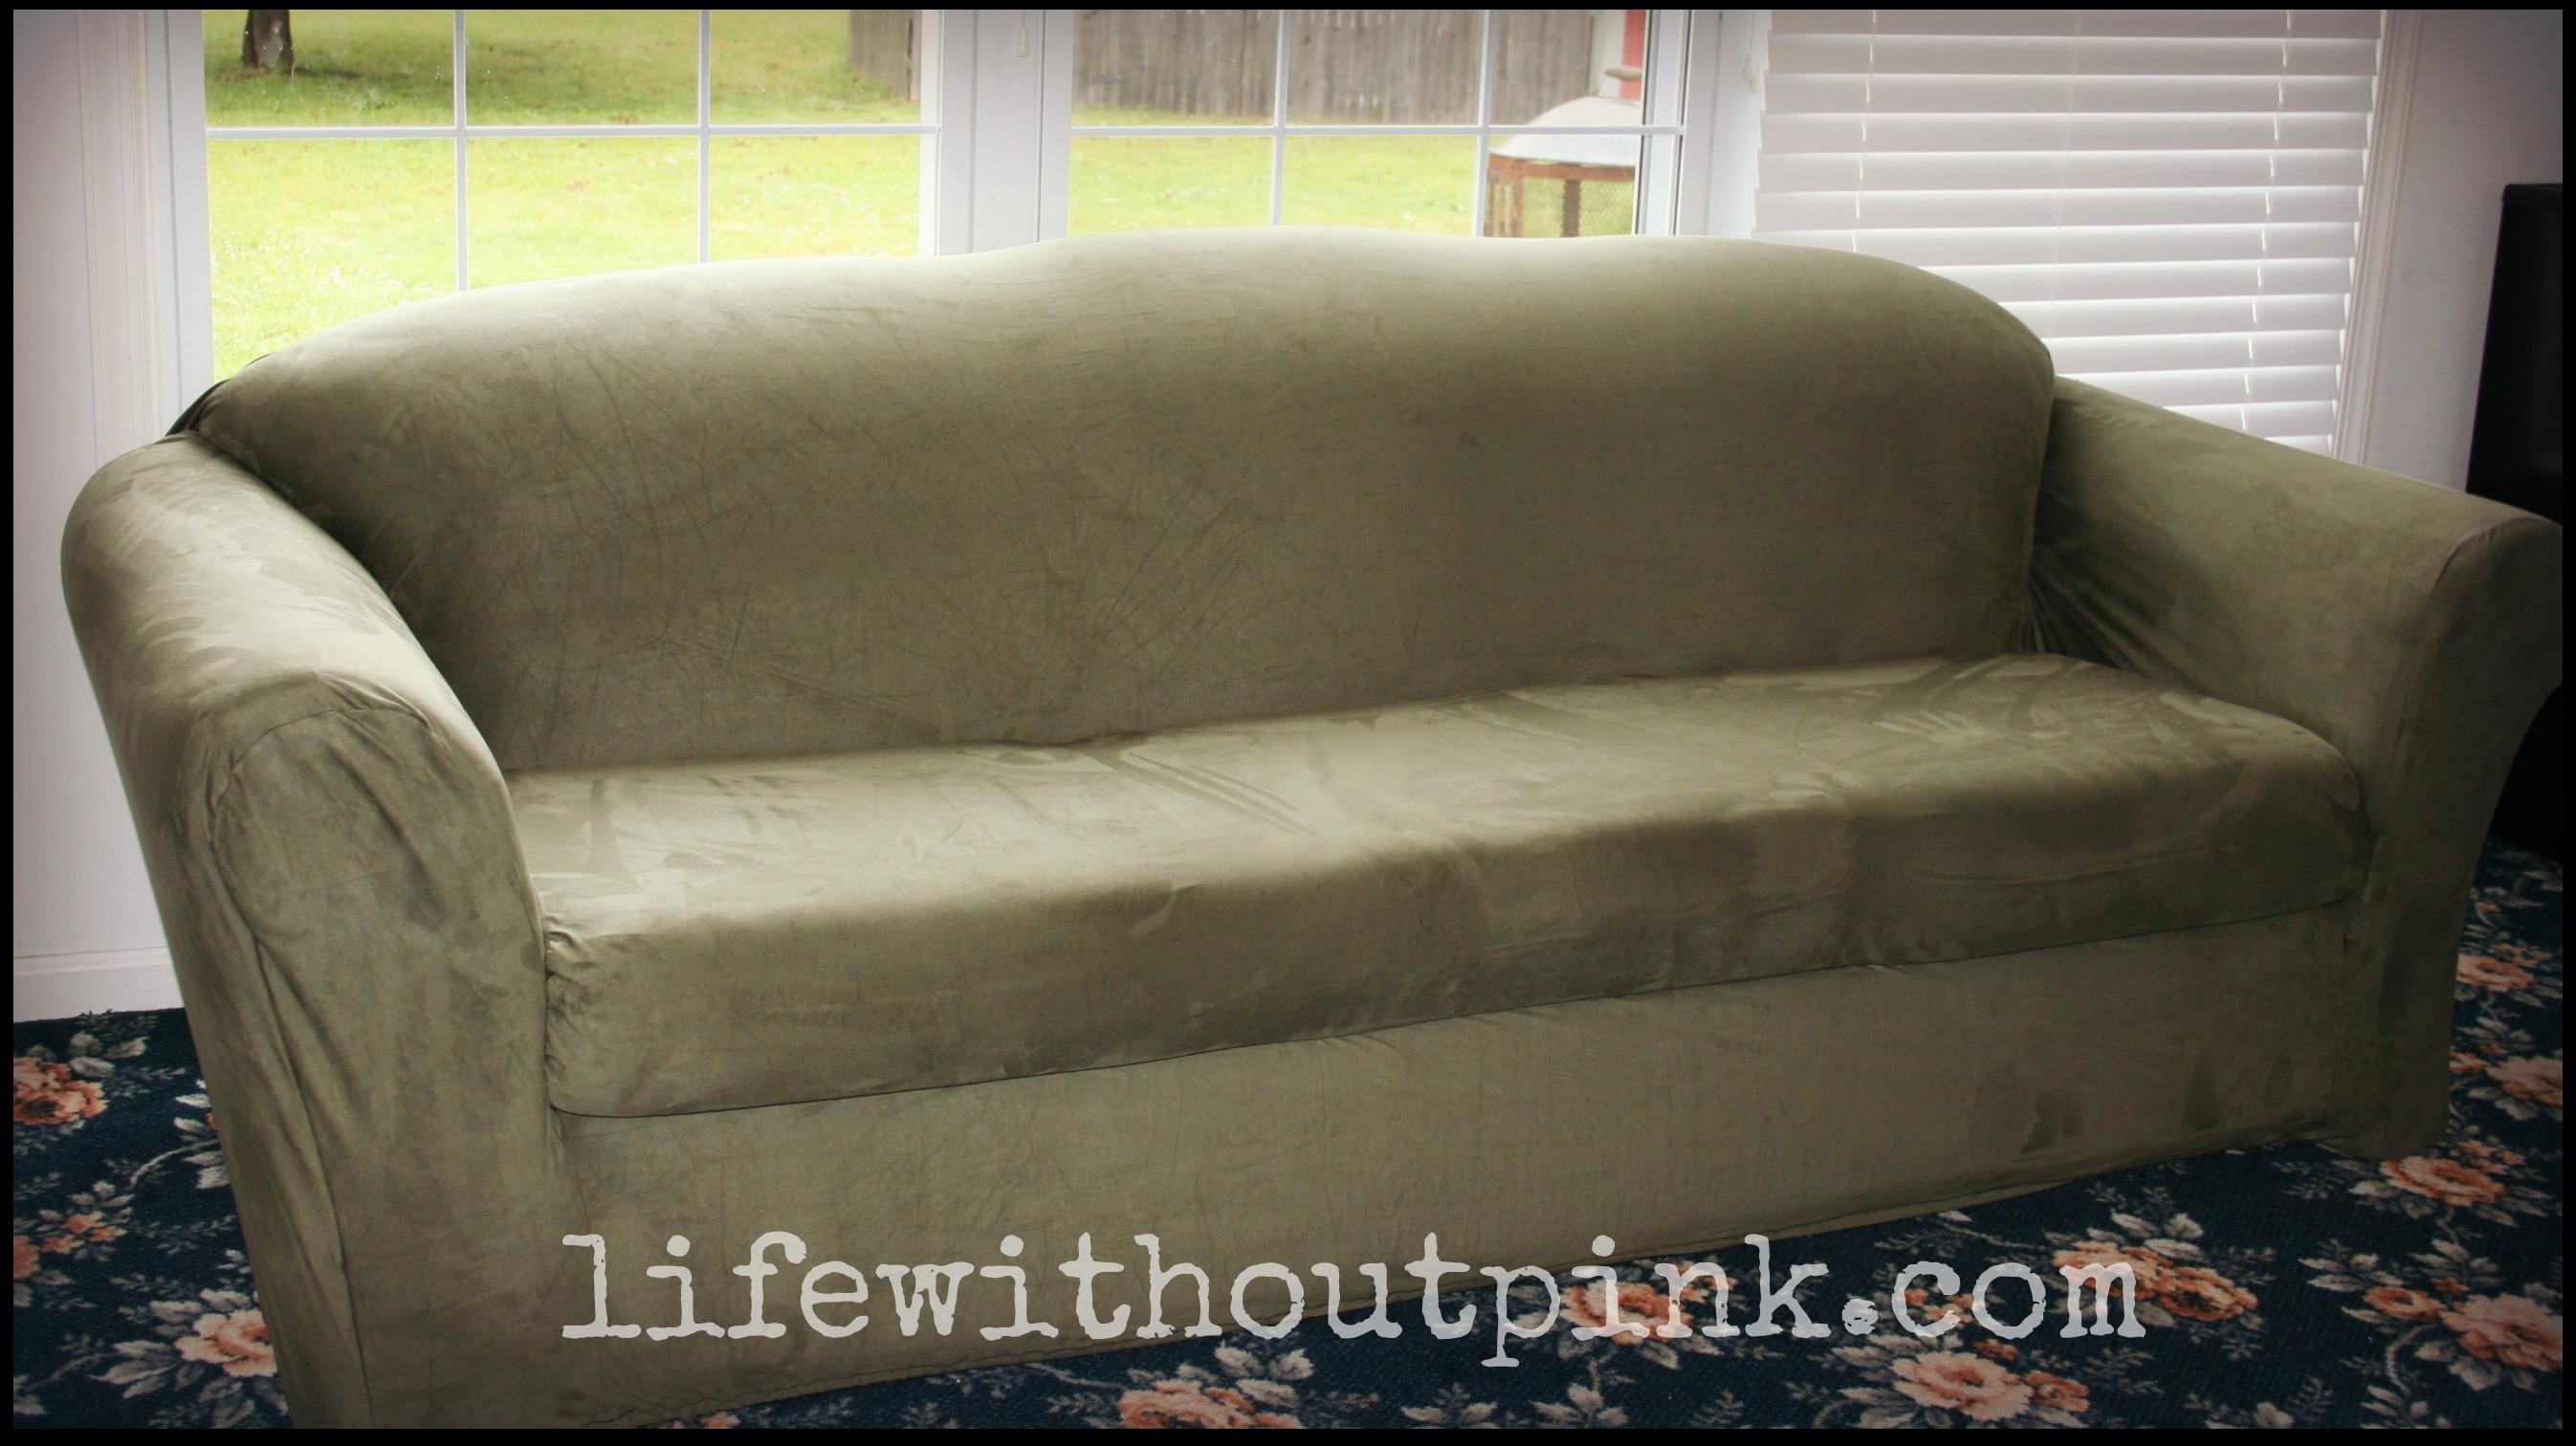 Sure Fit Slipcover Review {Video} | Life Without Pink With Regard To Stretch Slipcovers For Sofas (Image 16 of 20)